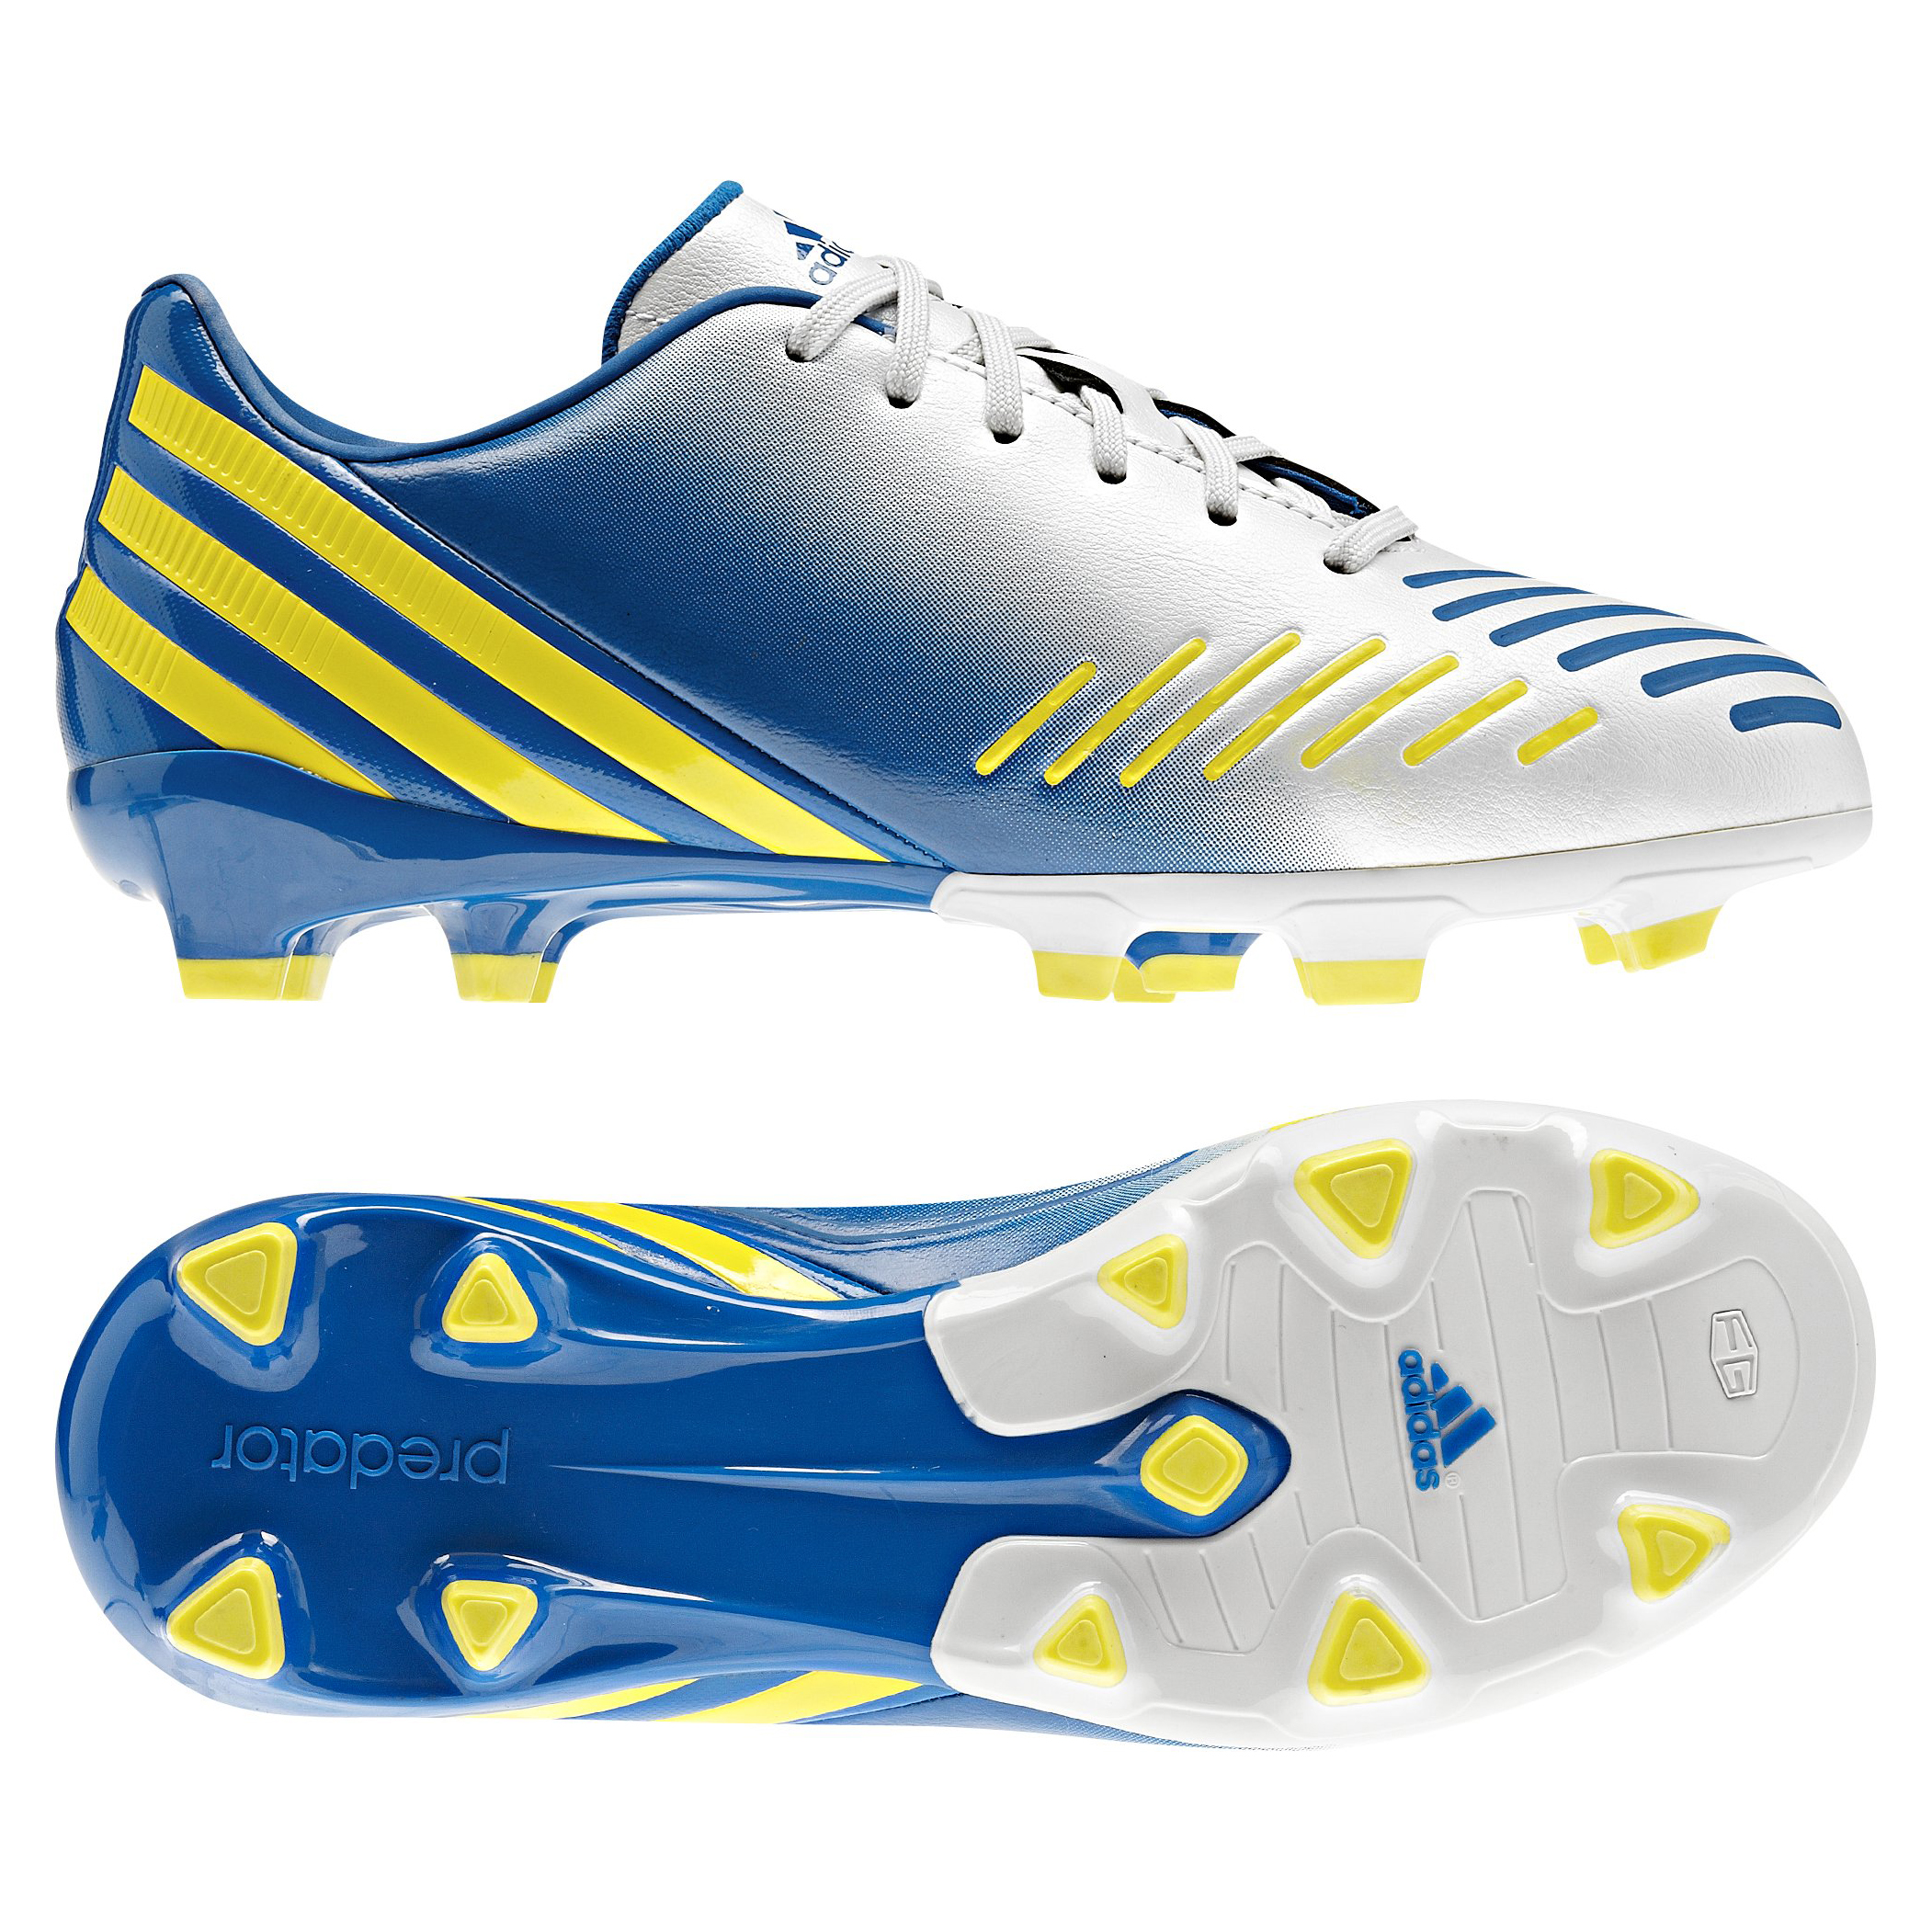 adidas Predator Absolado LZ TRX Firm Ground Football Boots - Running White/Vivid Yellow/Prime Blue - Kids